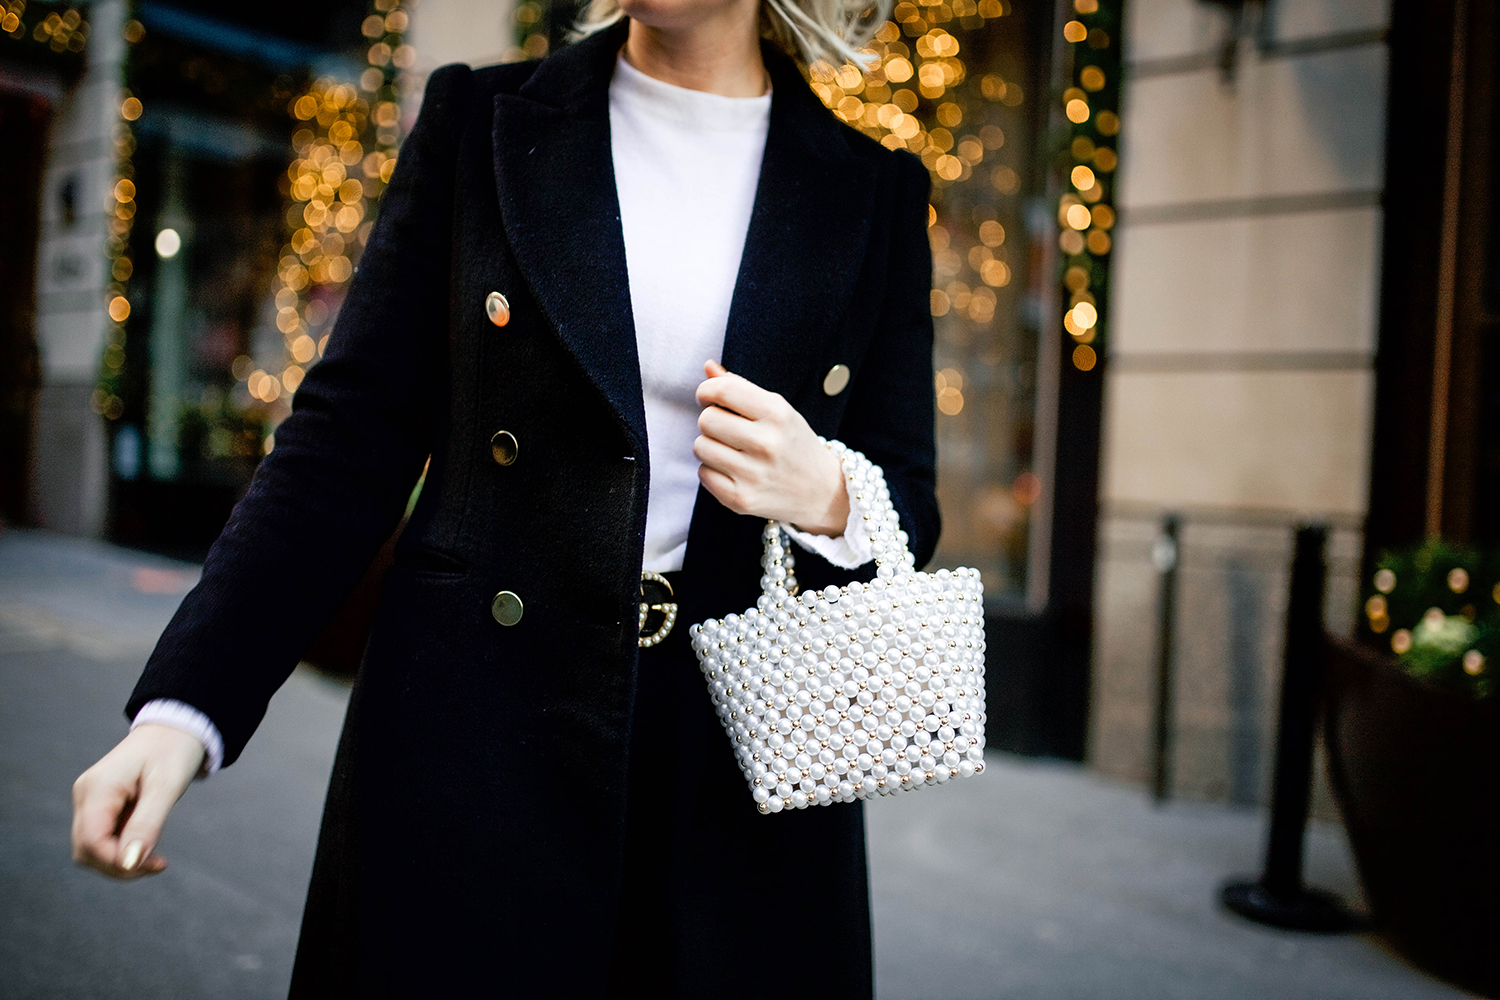 Merritt Beck wearing Club Monaco's Black Jemma Coat in New York